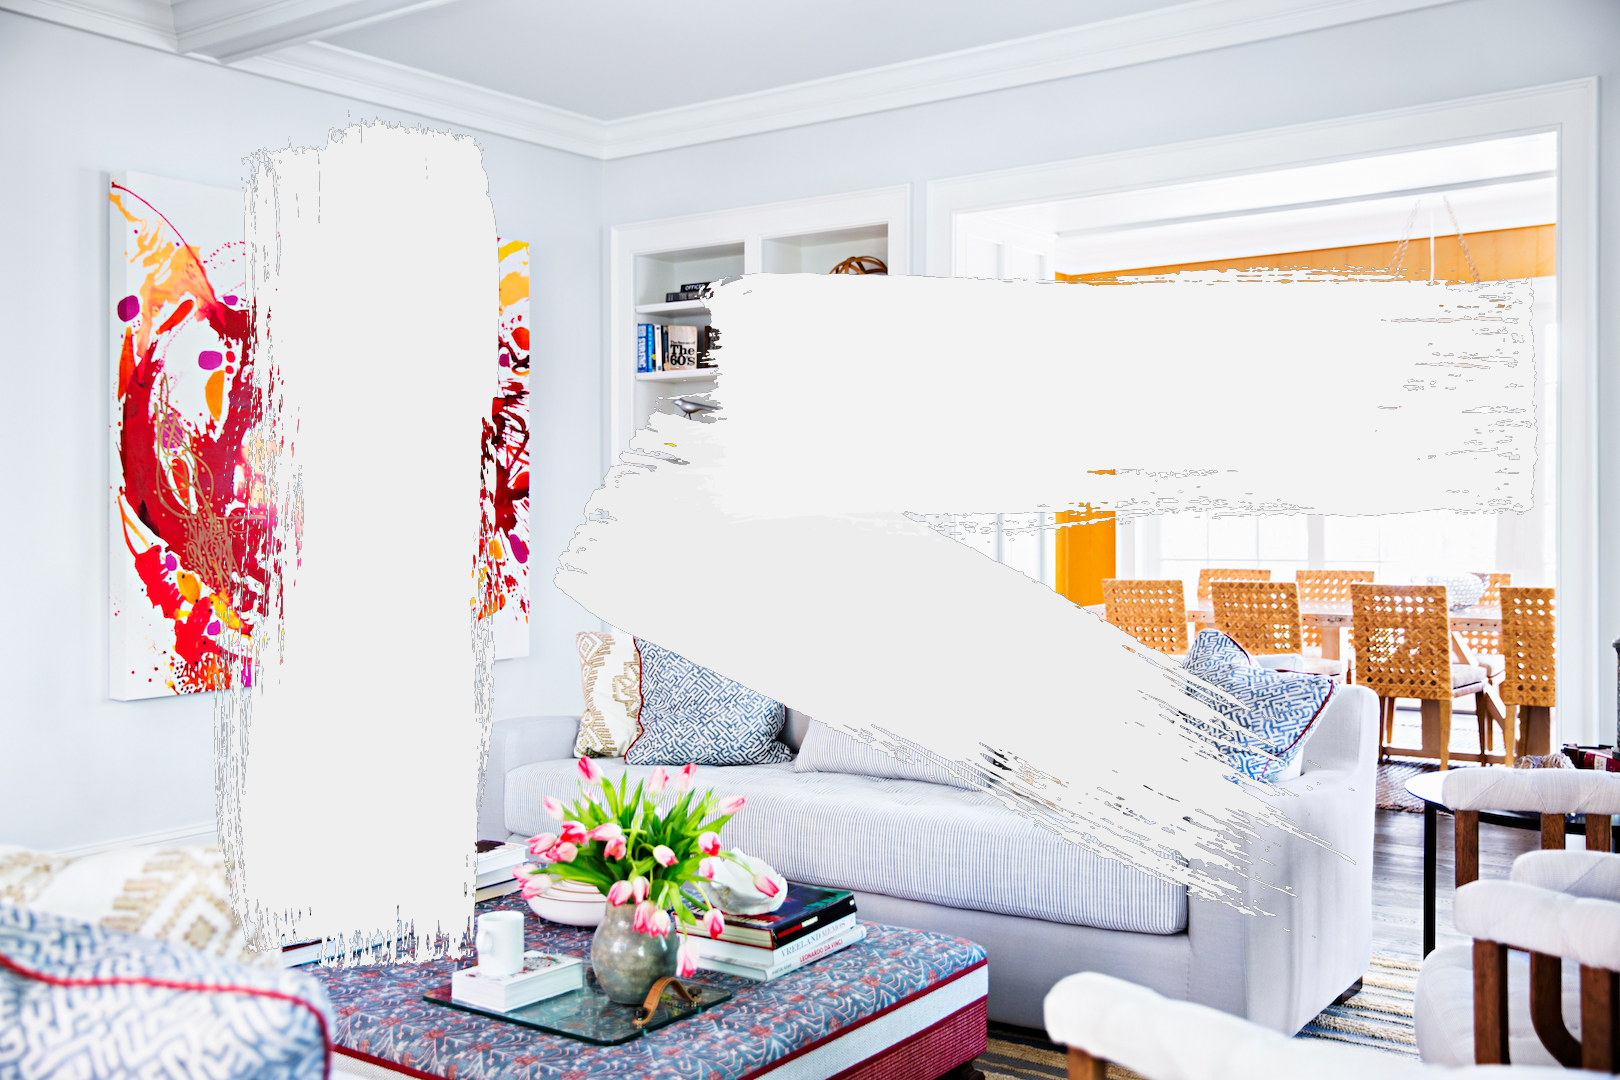 21 Best White Paint Colors For Every Room According To Designers Real Simple